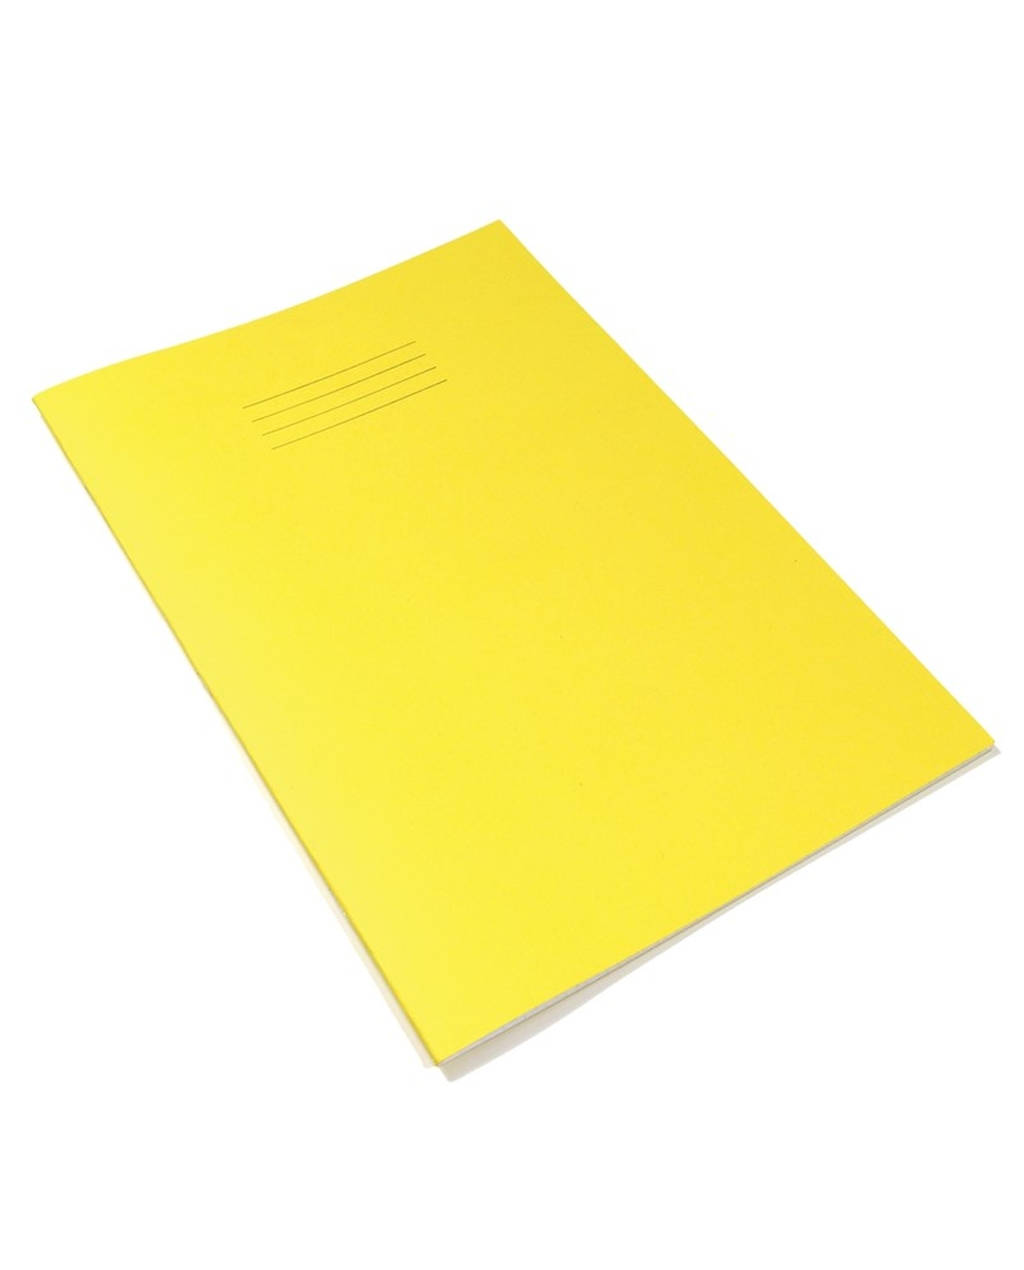 A4 Tinted Ex Books 10mm Square Green Paper, Yellow Cover